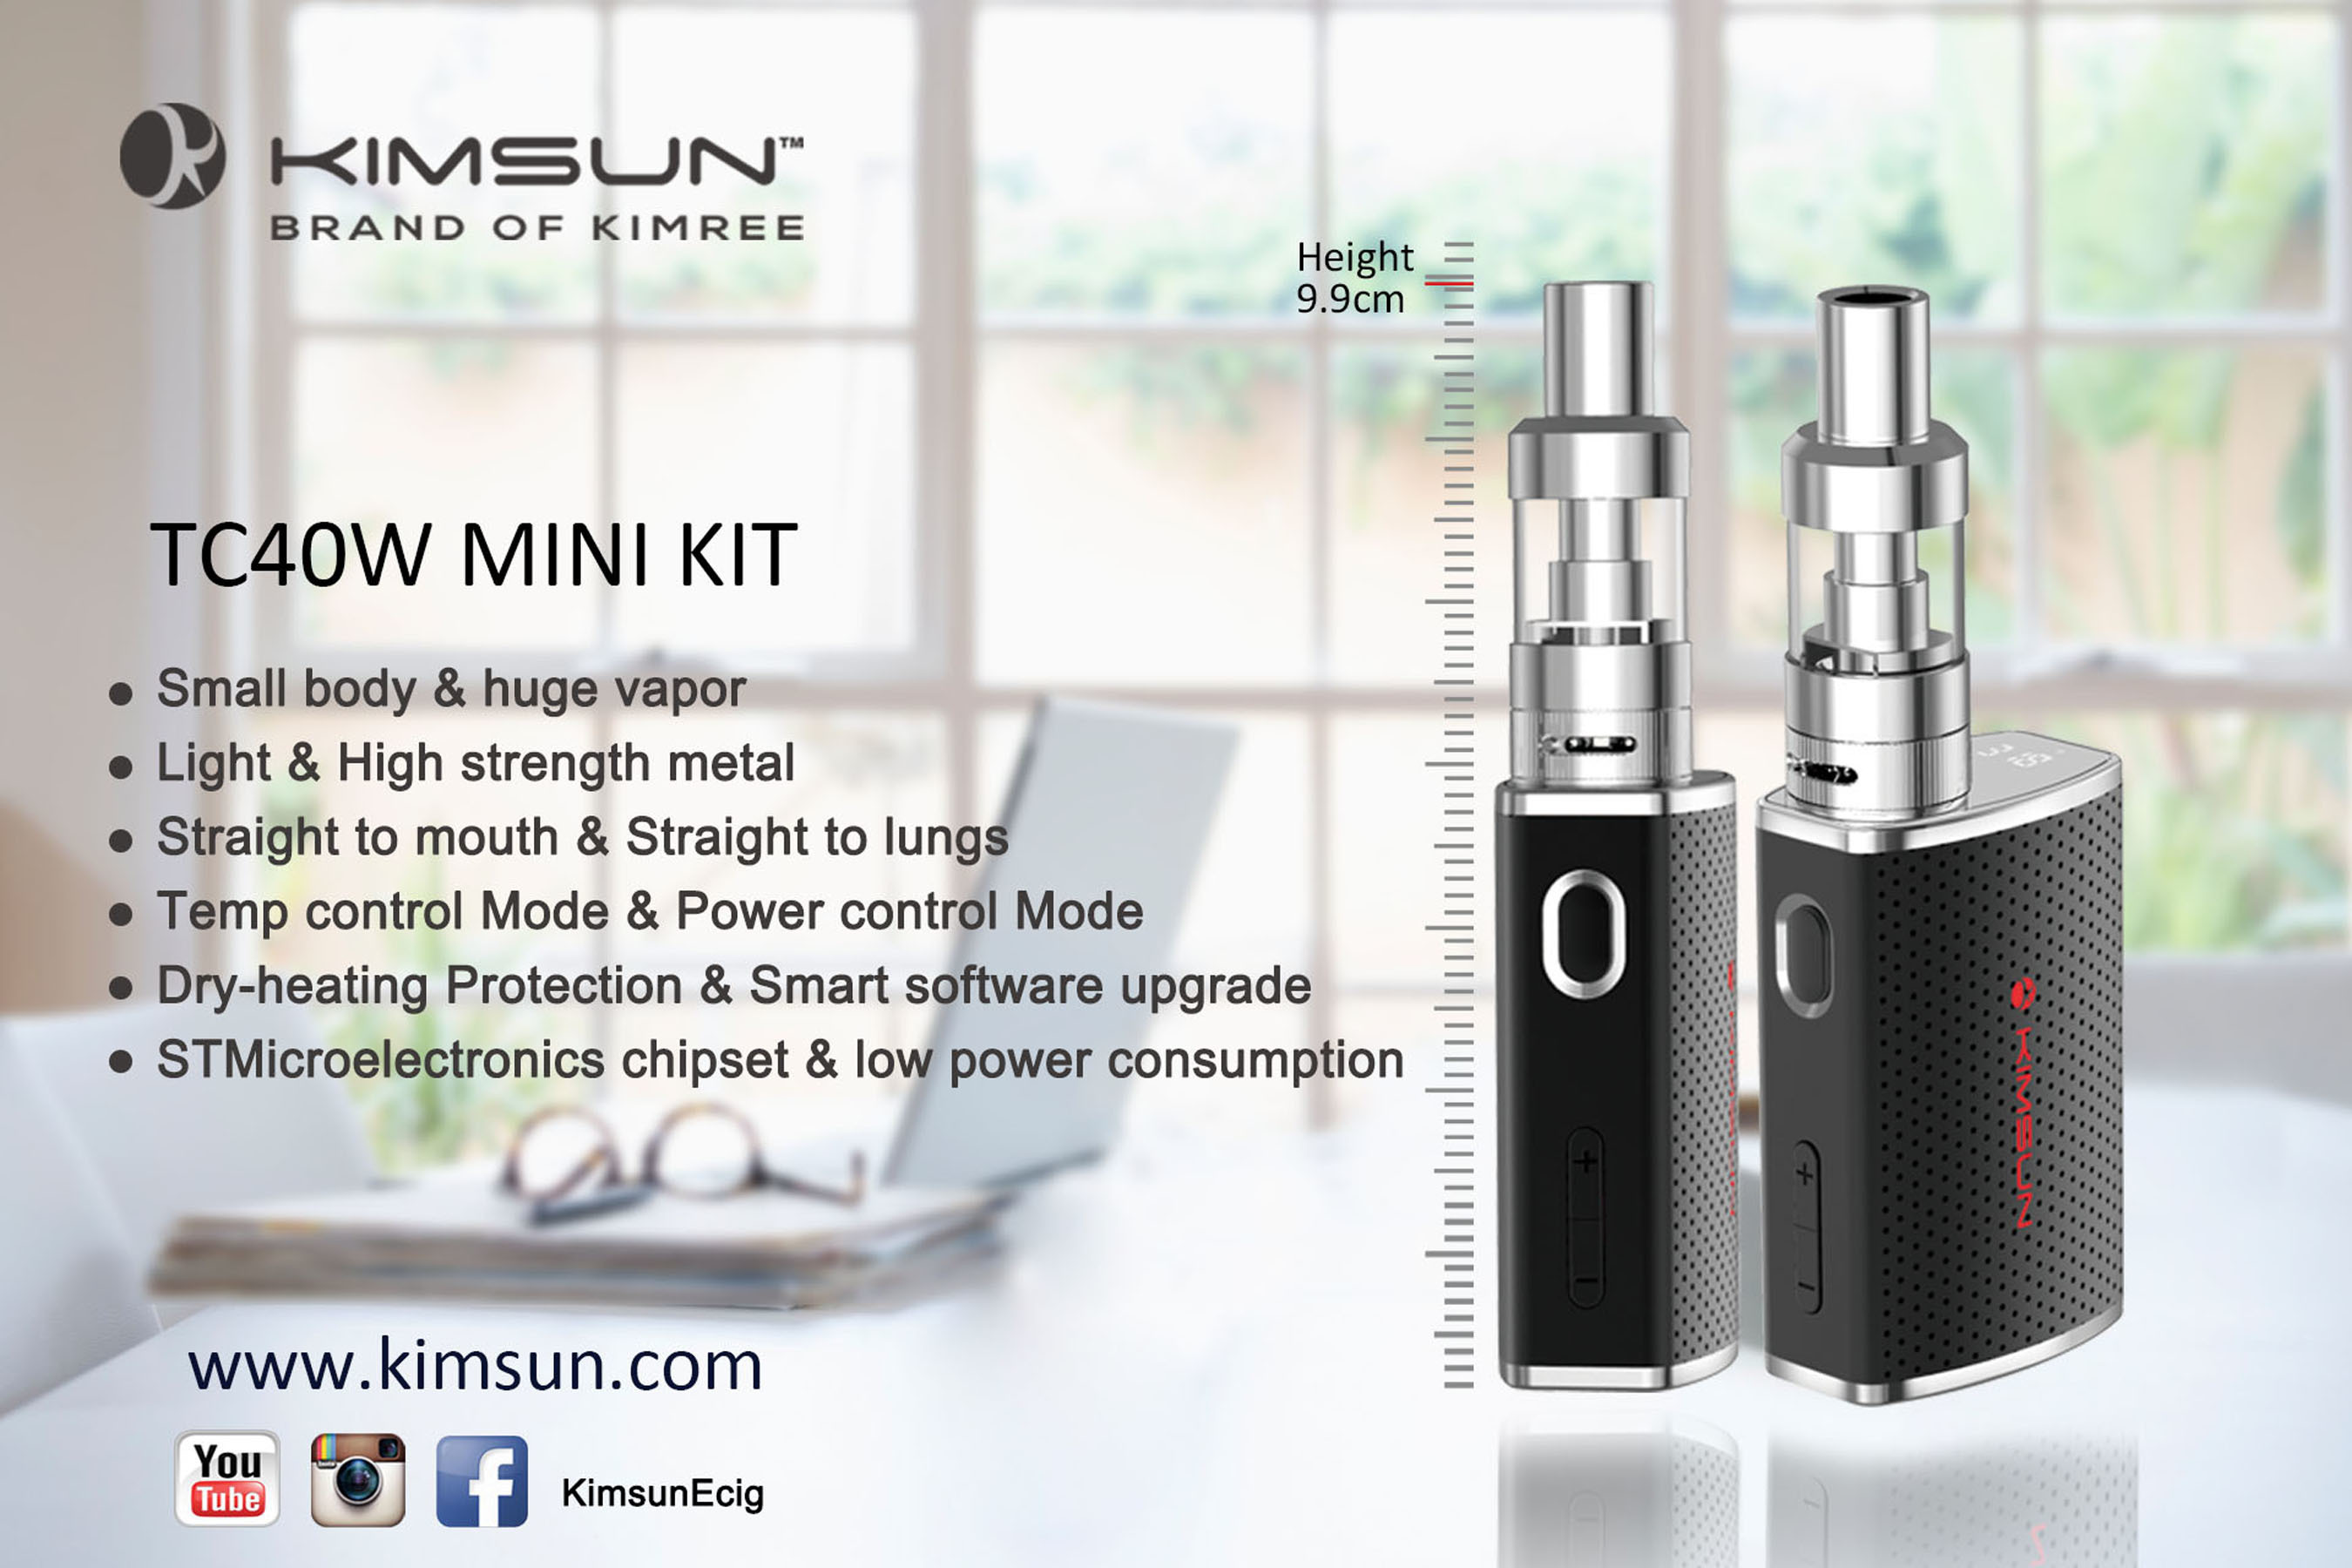 Latest KIMREE's Portable Fashion Vaporizer -- KIMSUN TC40W MINI KIT